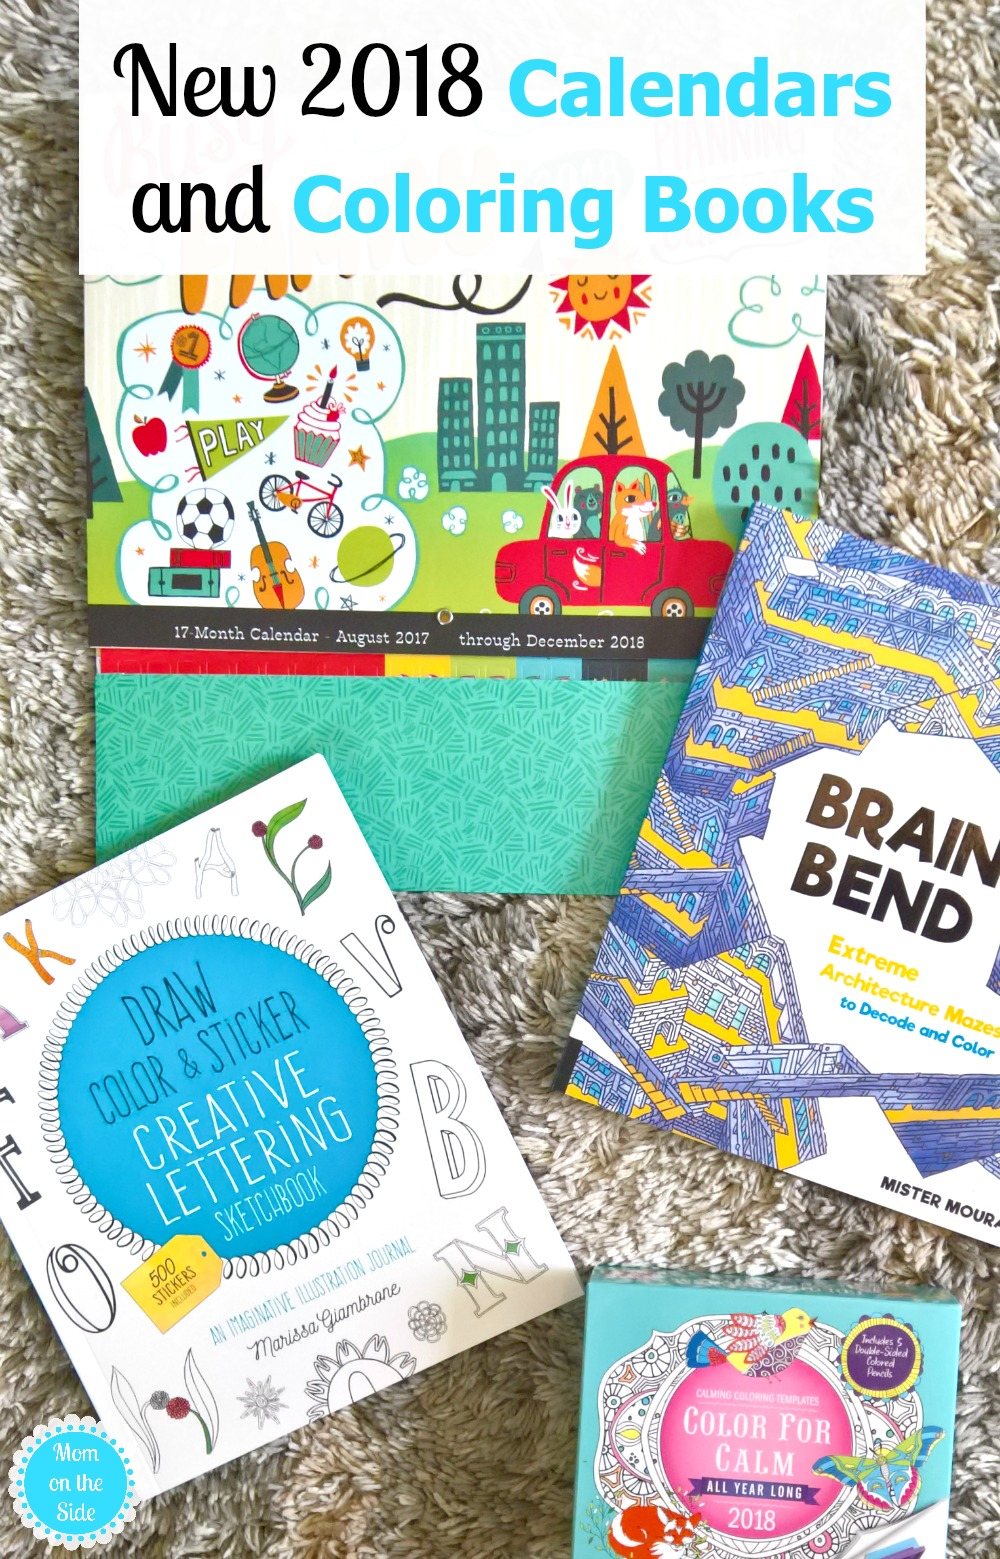 Calendar Book 2018 : New calendars and coloring books mom on the side